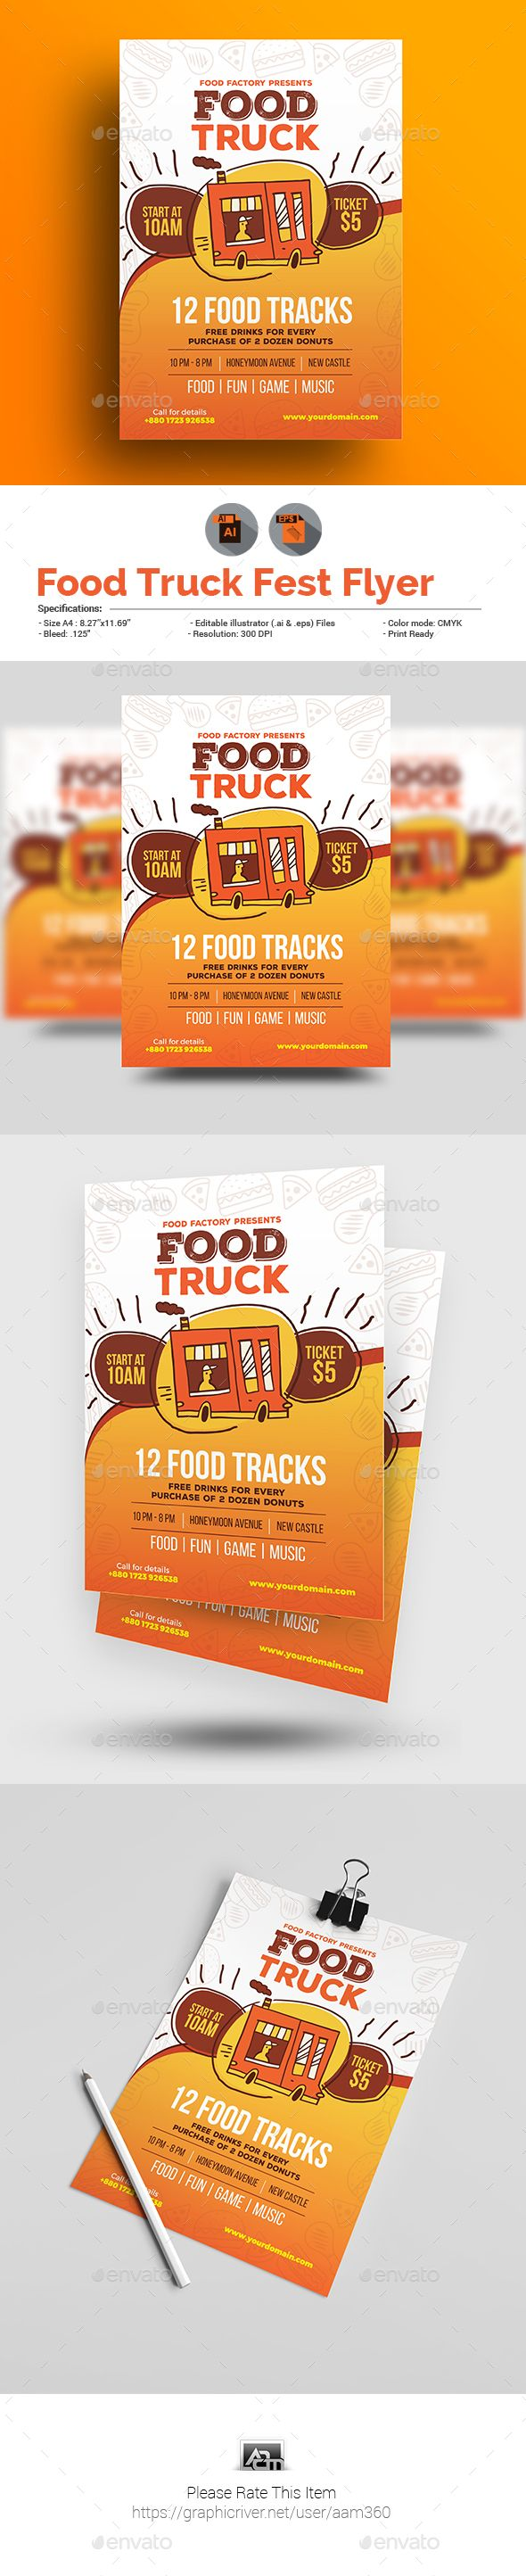 Food Truck Flyer Ai Illustrator Food Truck And Flyer Template - Food truck flyer template